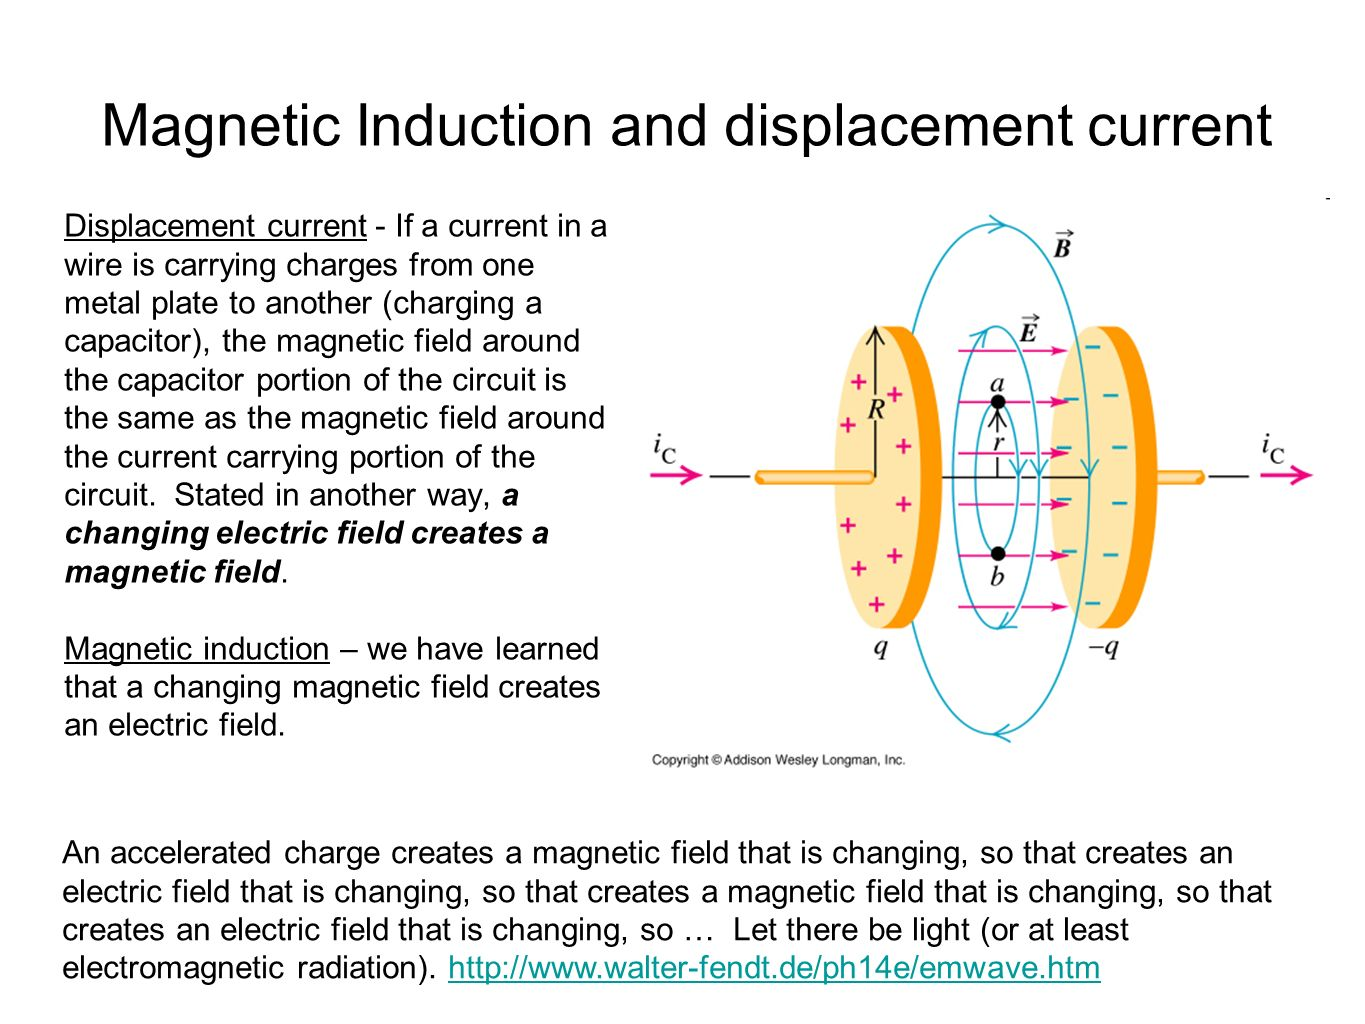 Stunning What Causes Electromagnetic Fields Images - Electrical ...